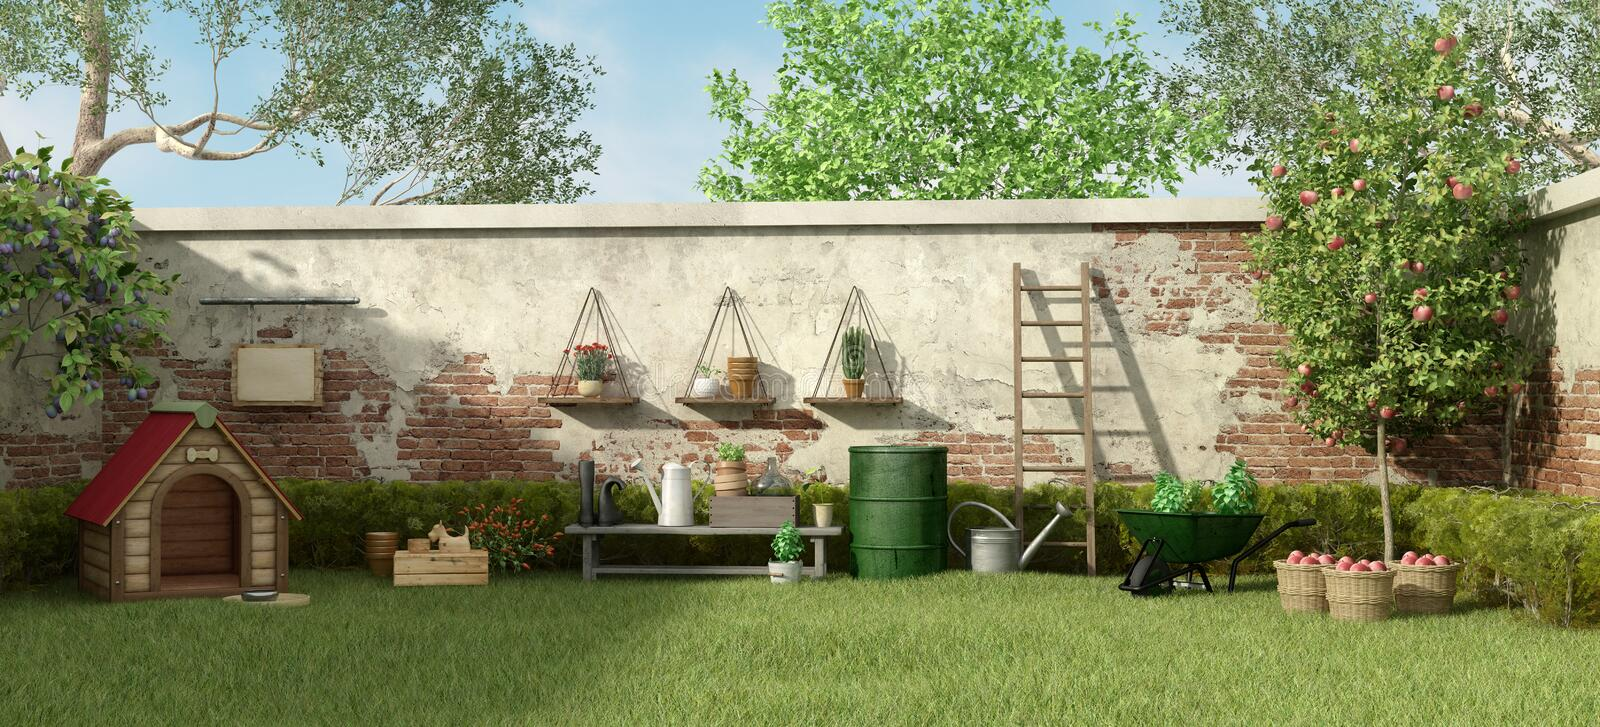 Garden with dog house and gardening tools royalty free illustration